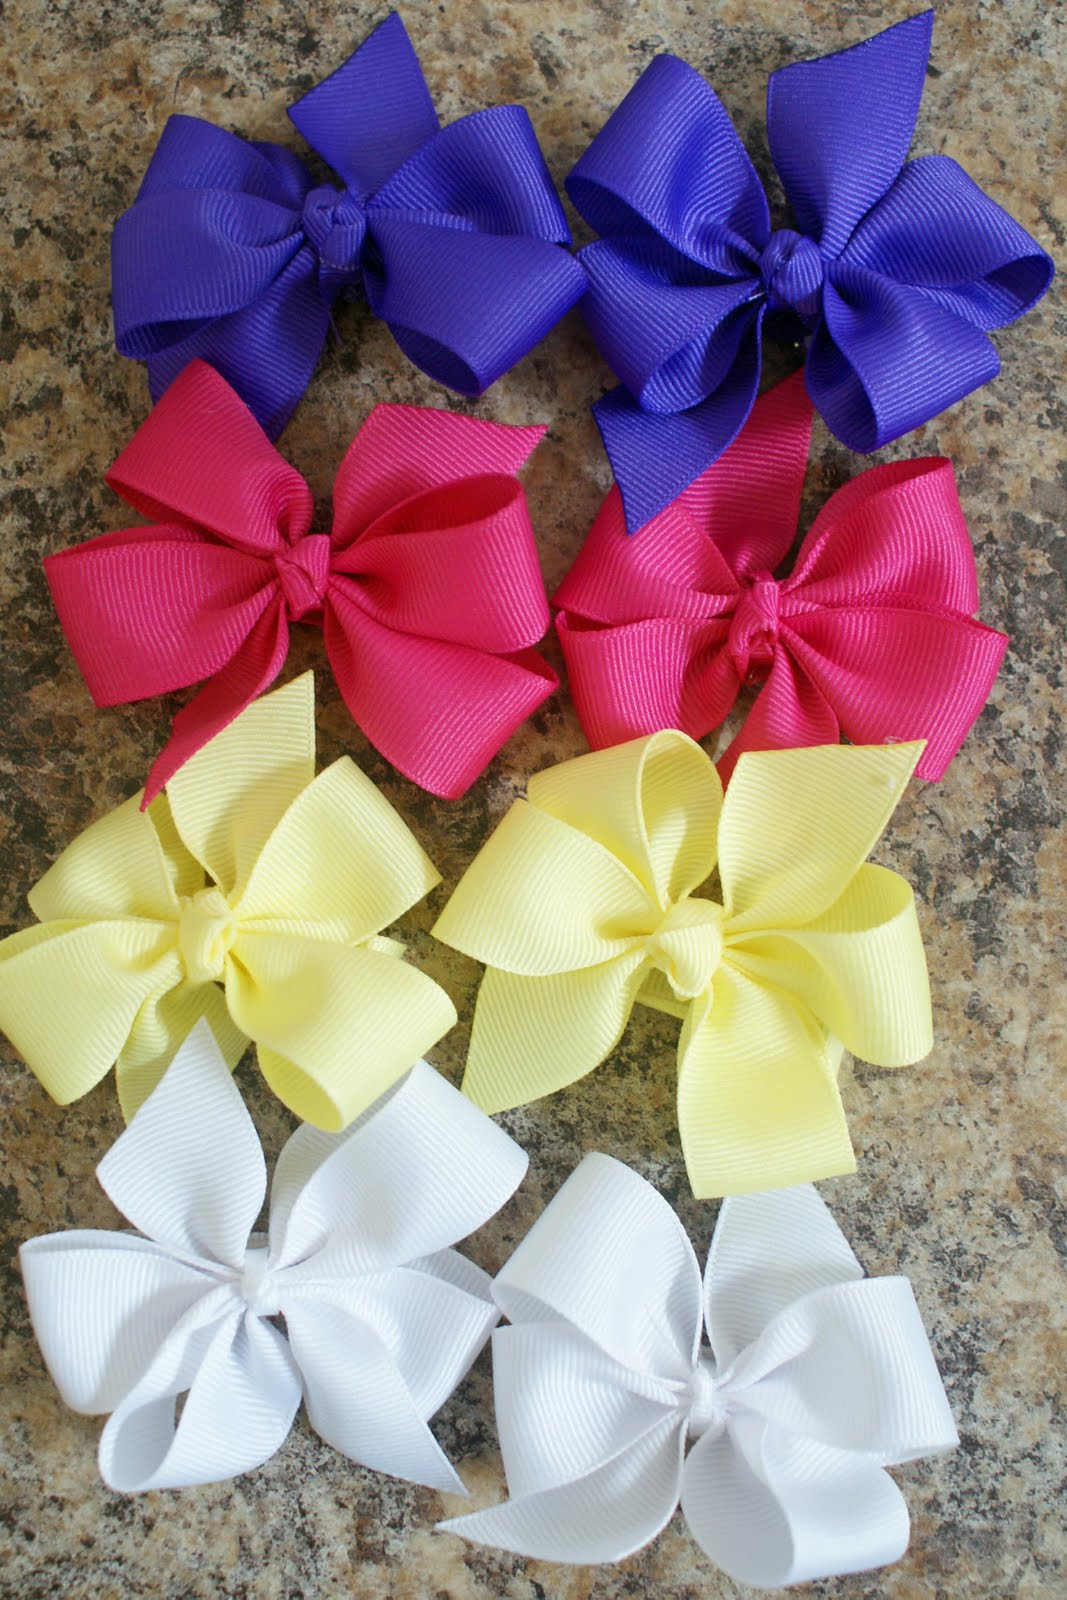 7 ways to make bows!